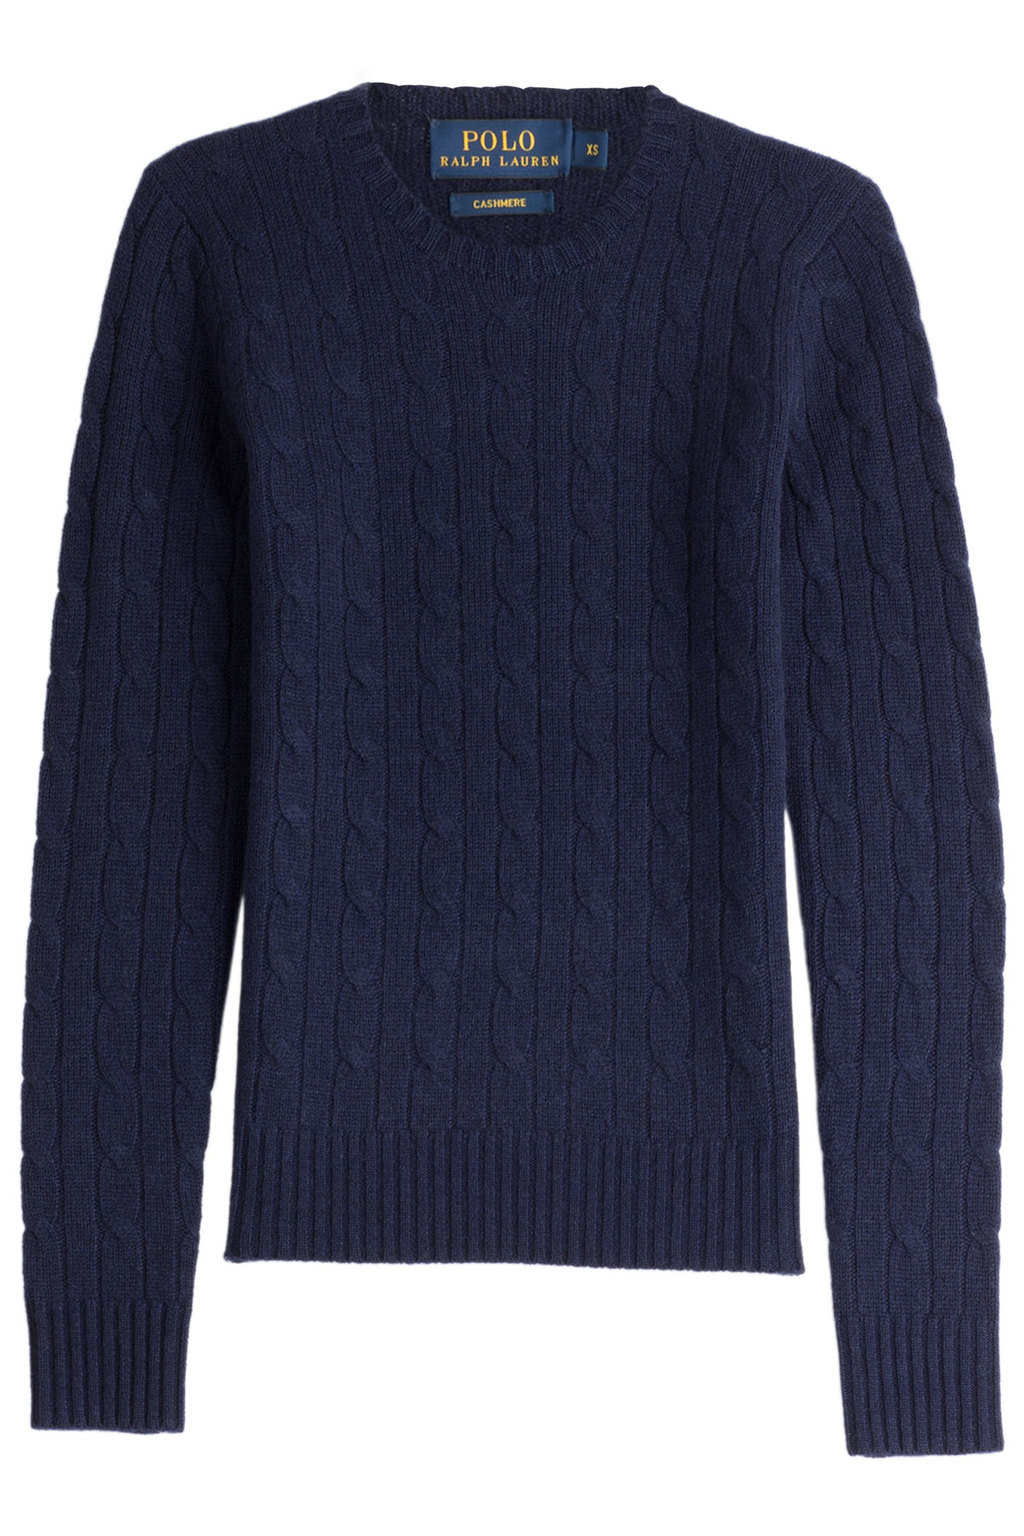 Cashmere Cable Knit Pullover Blue - style: standard; pattern: cable knit; predominant colour: navy; occasions: casual; length: standard; fit: slim fit; neckline: crew; fibres: cashmere - 100%; sleeve length: long sleeve; sleeve style: standard; texture group: knits/crochet; bust detail: bulky details at bust; pattern type: fabric; season: s/s 2016; wardrobe: highlight